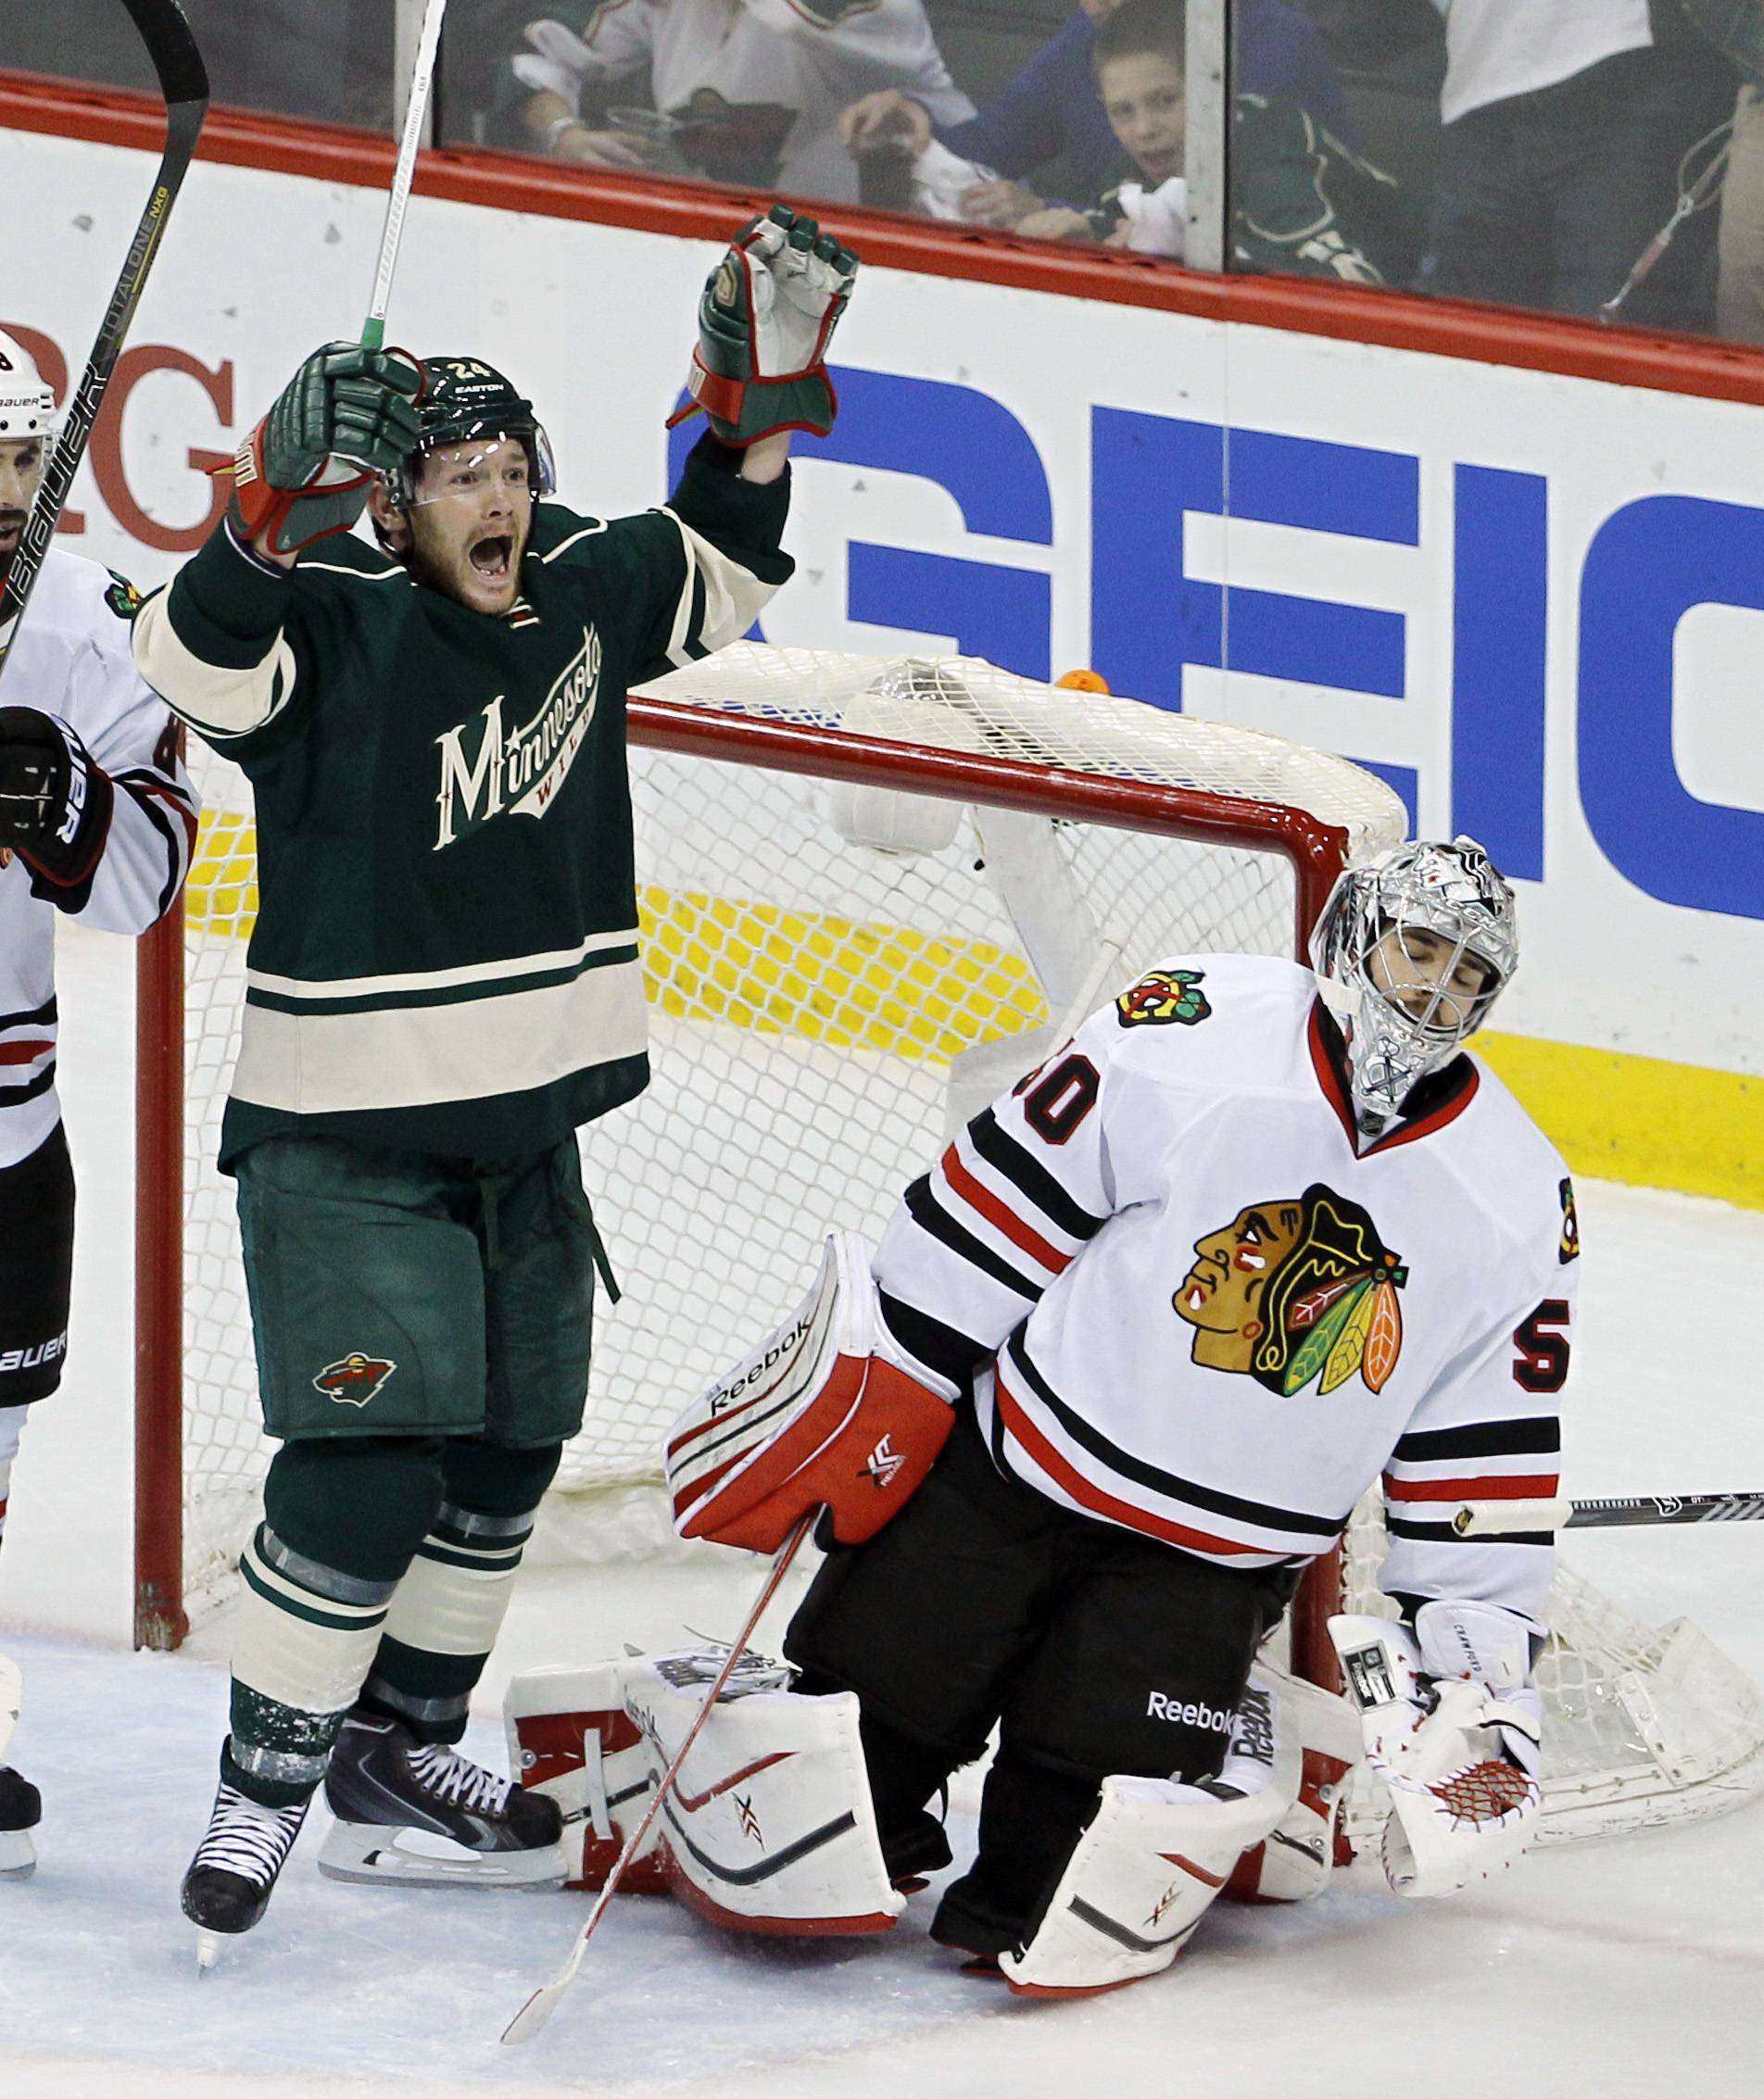 Minnesota Wild left wing Matt Cooke, left, celebrates after Wild right wing Justin Fontaine scored on Chicago Blackhawks goalie Corey Crawford, right, during the first period of Game 4 of an NHL hockey second-round playoff series Friday in St. Paul, Minn.